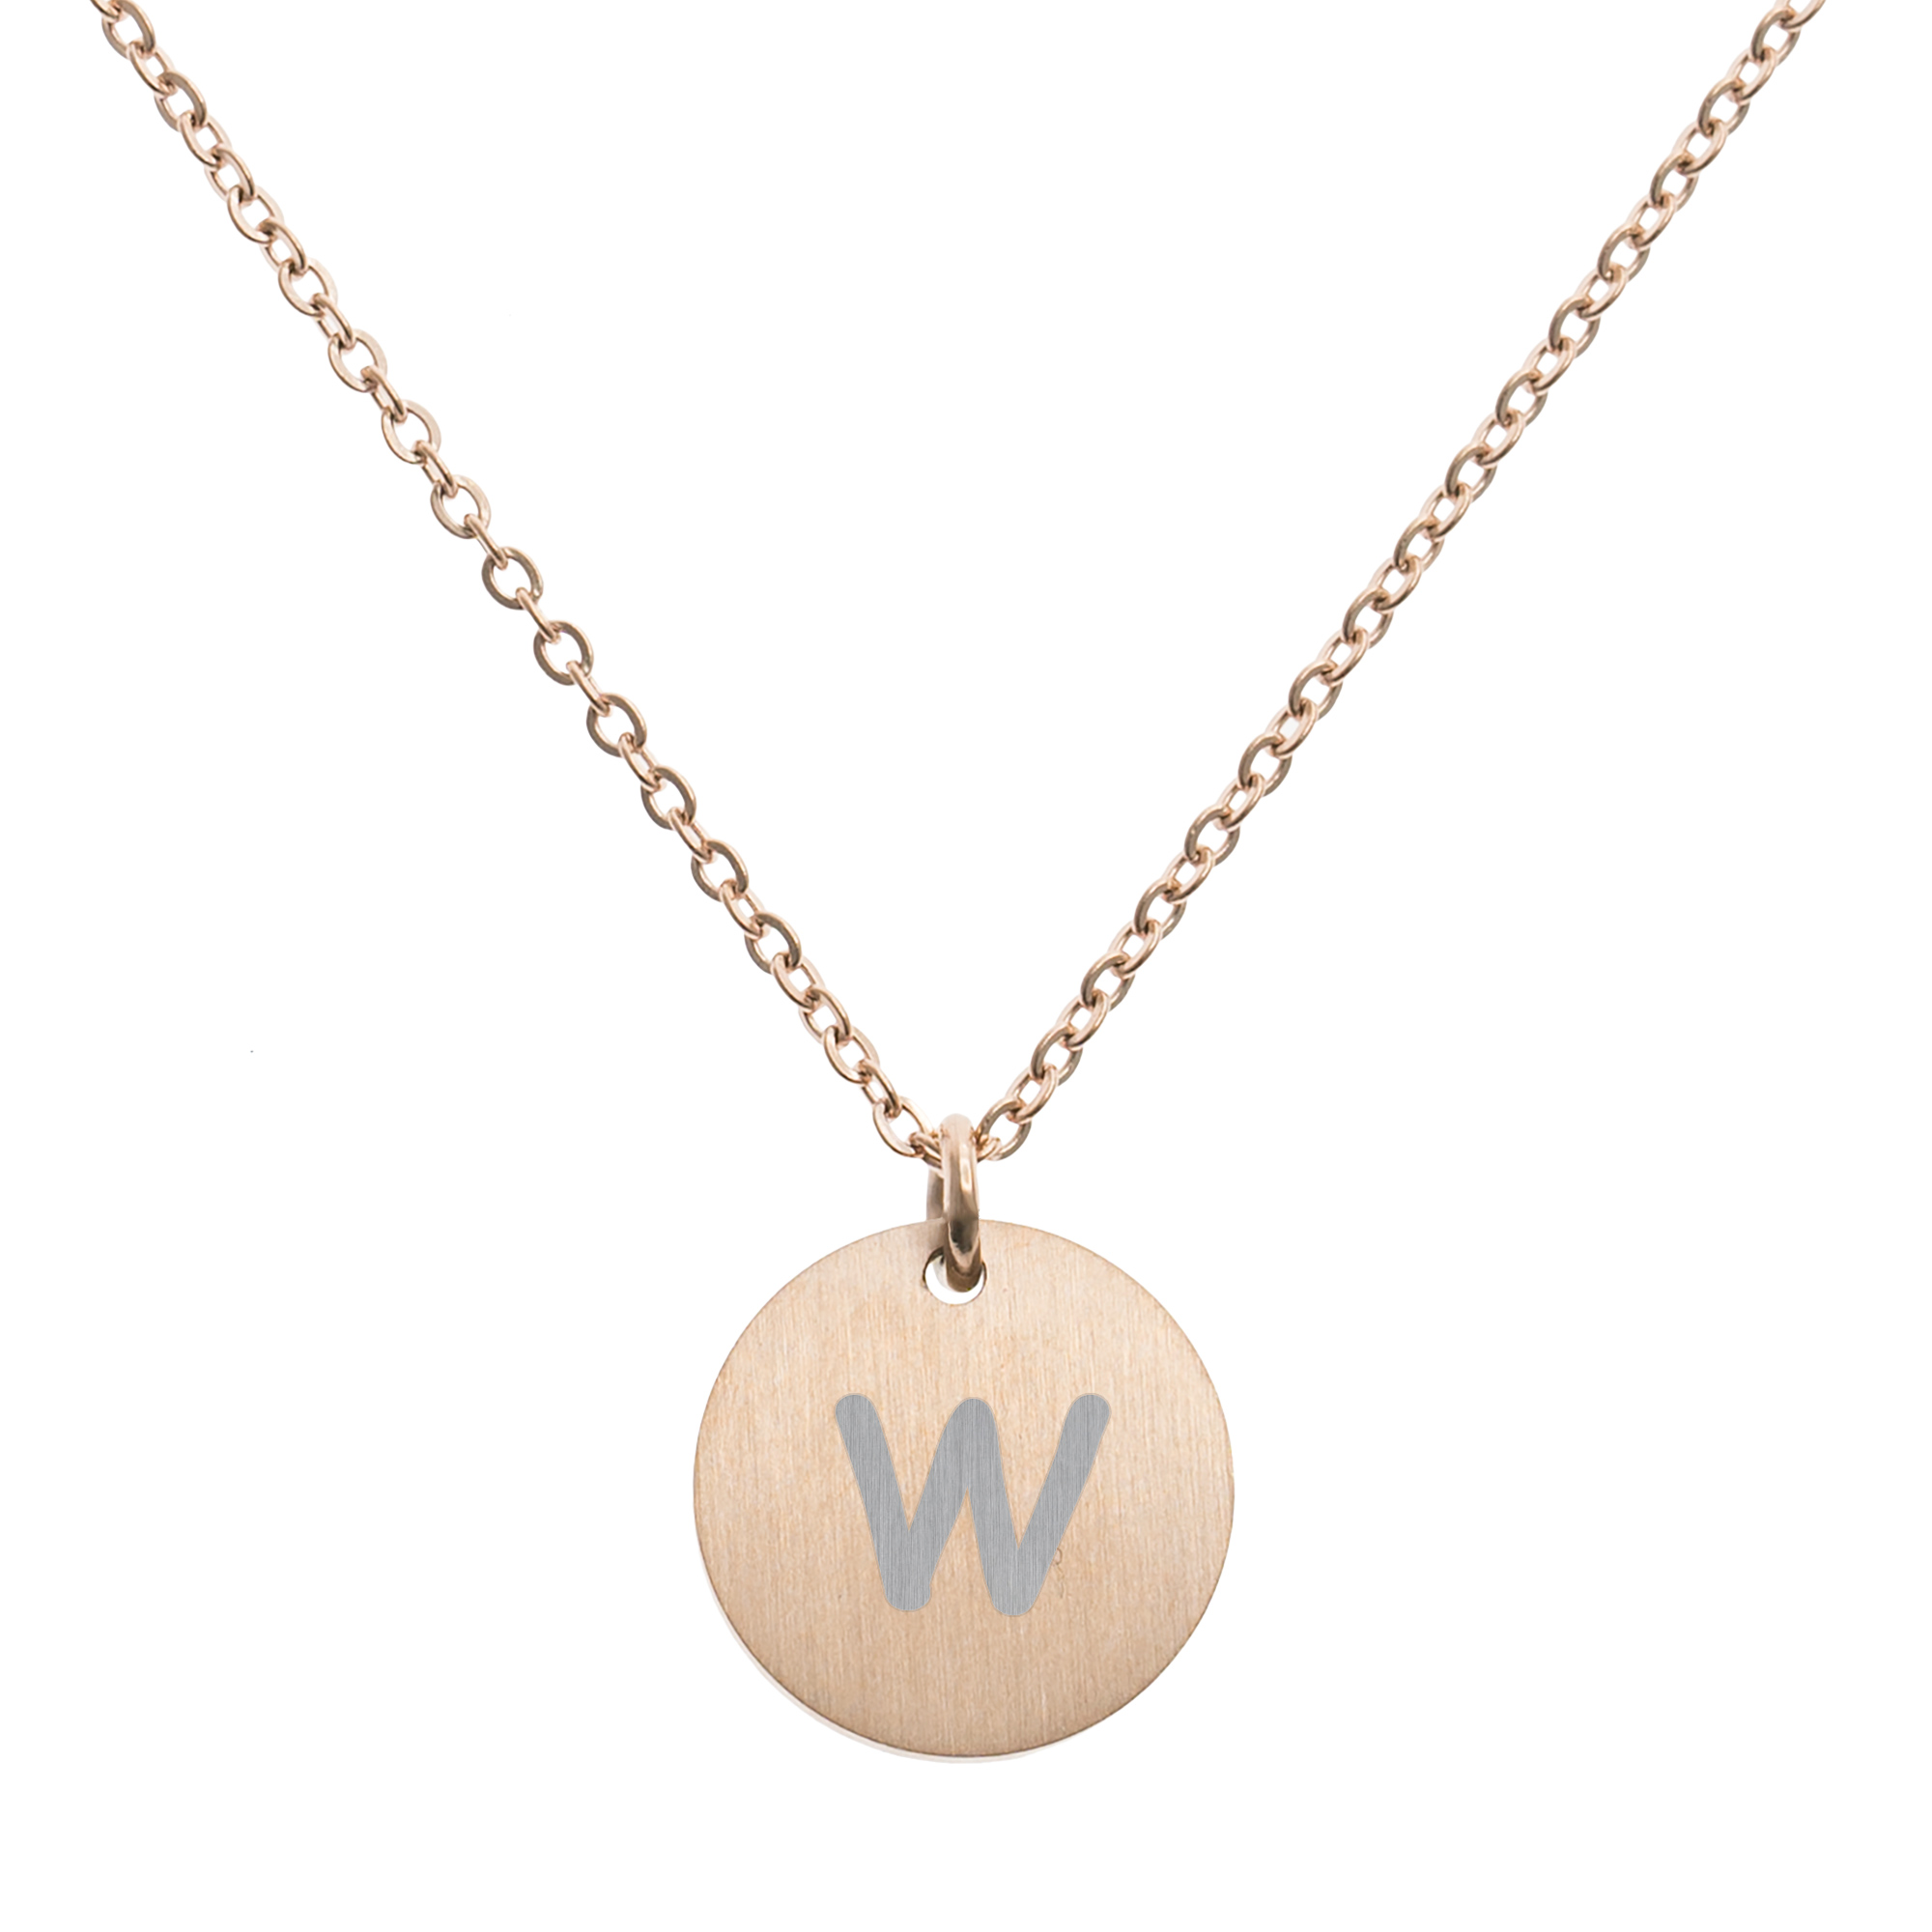 Engraved Metal Initial Letter Disc Pendant Chain Necklace 18.5 in + 2.5 in - W - Rose Gold Tone